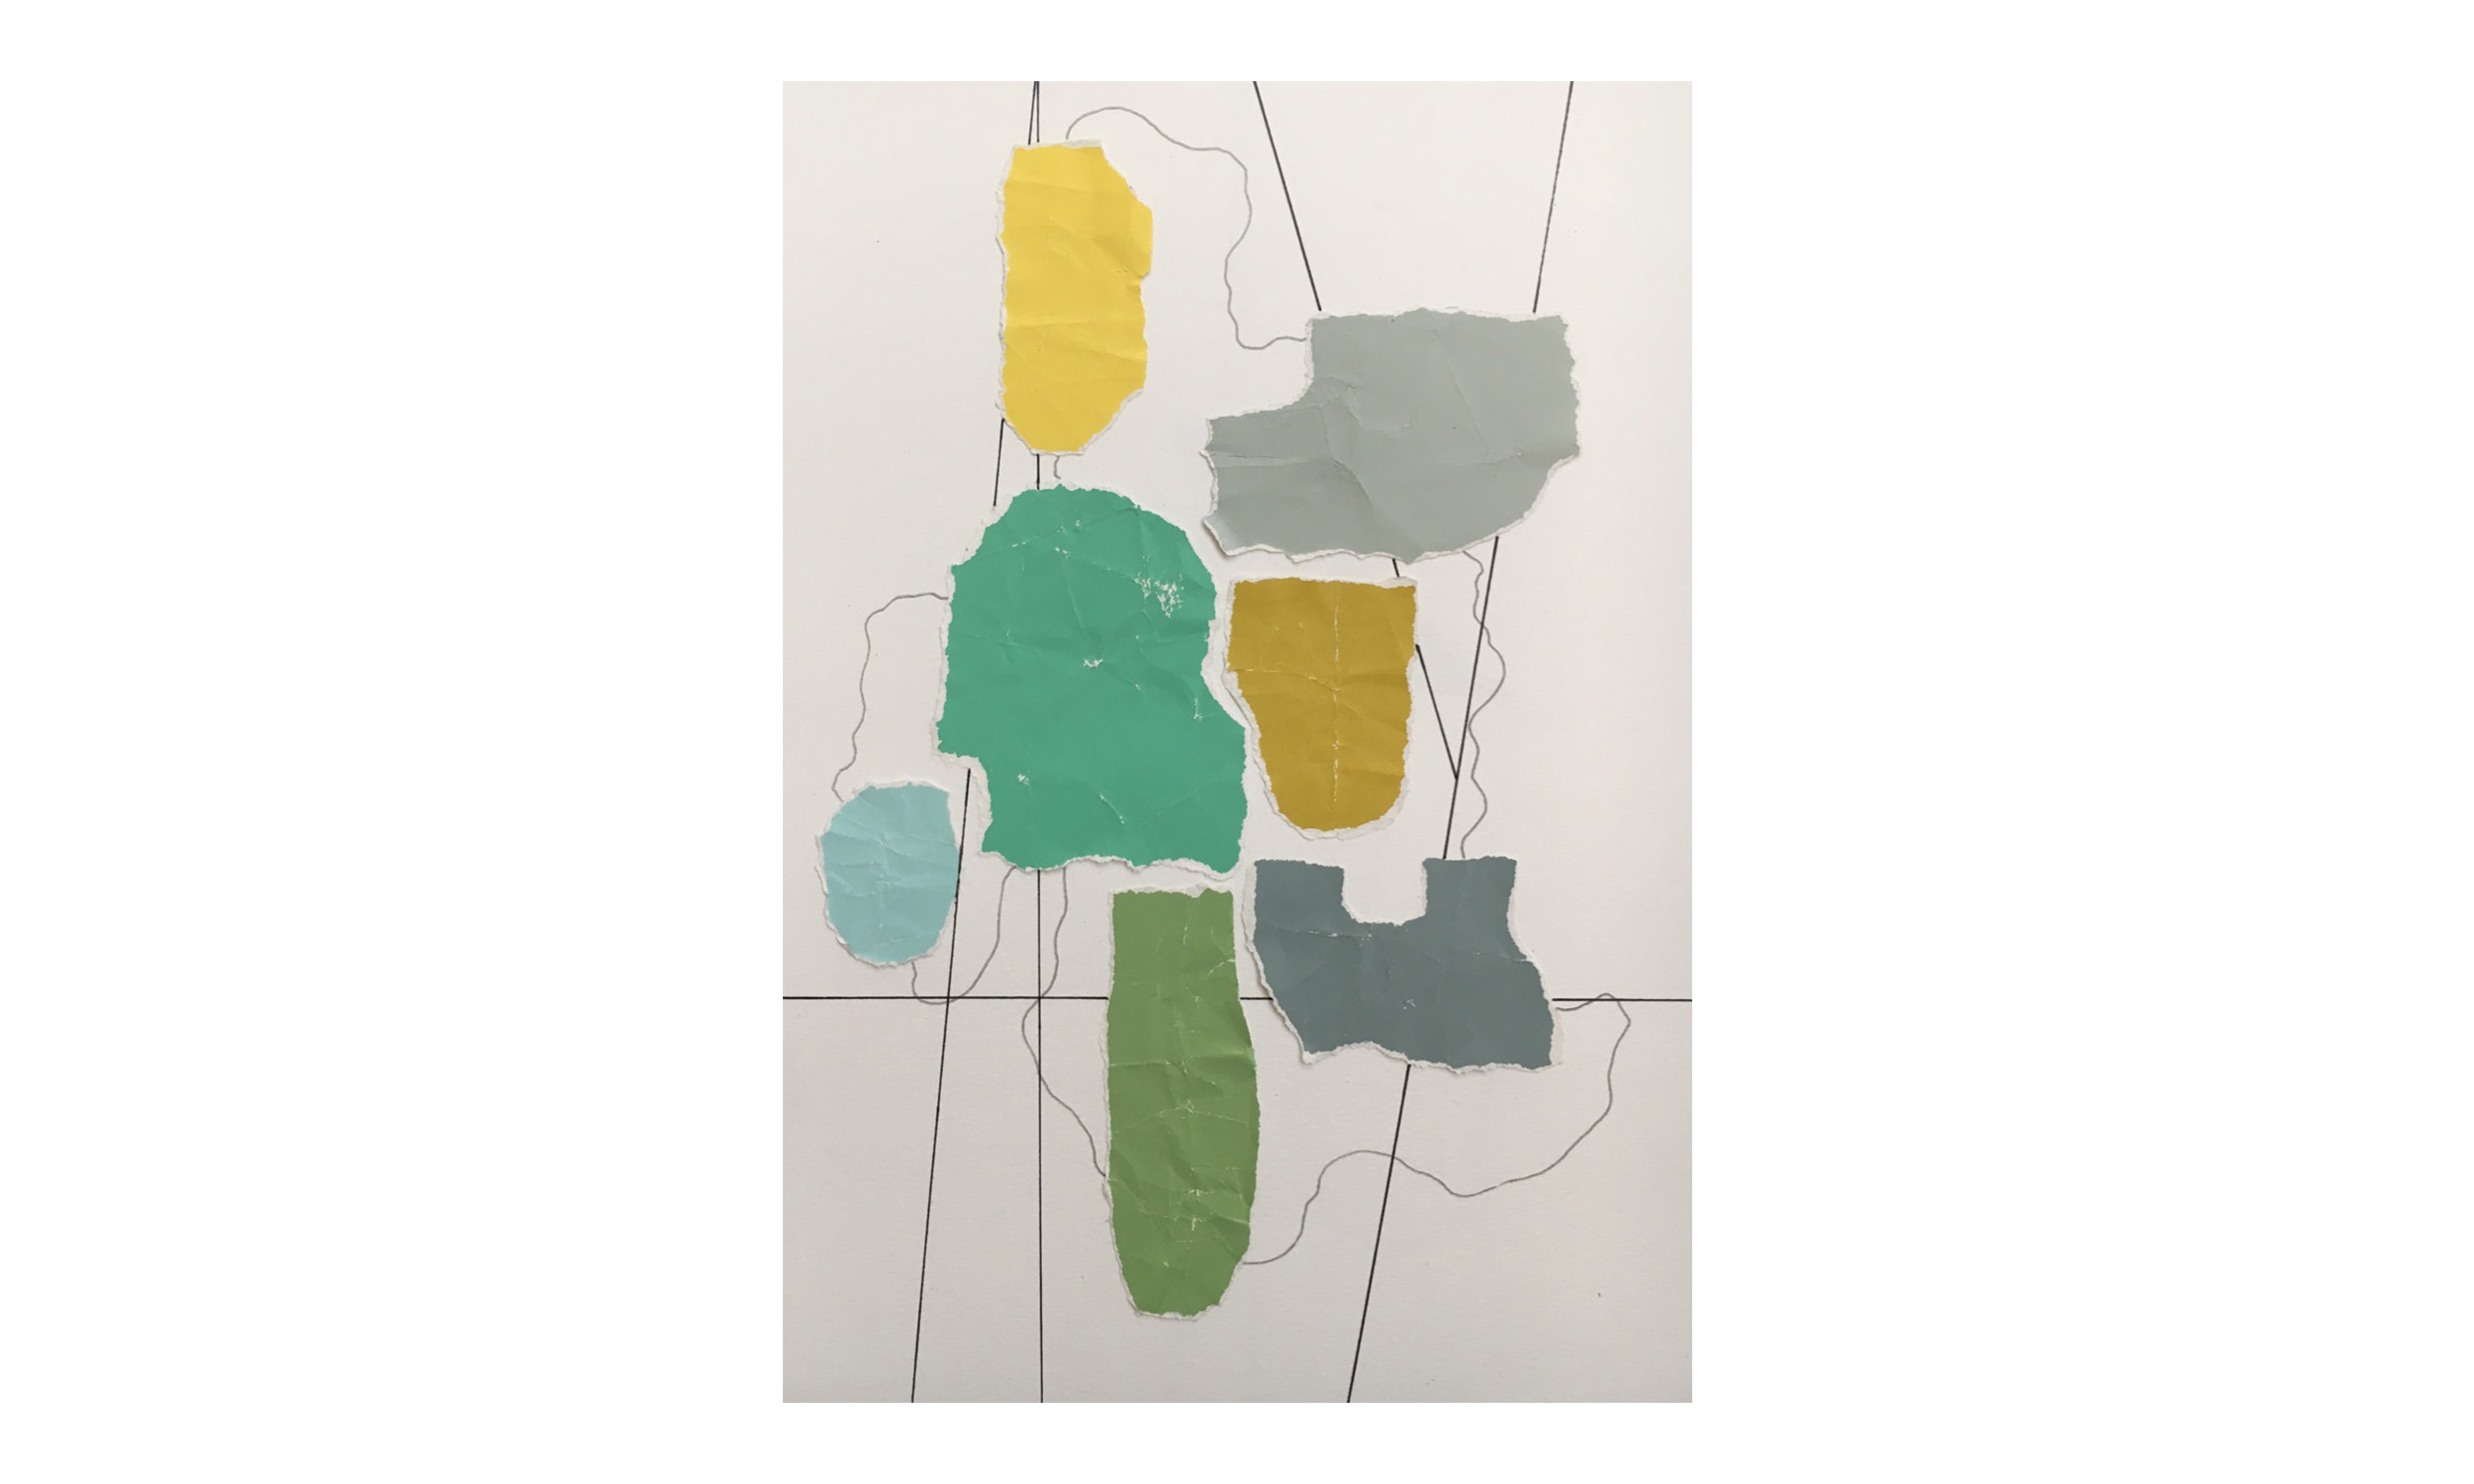 Imaginary Maps 1 , paint chips on paper, pen, pencil, 9 x 12 inches, unframed, $200    Contact us for purchase